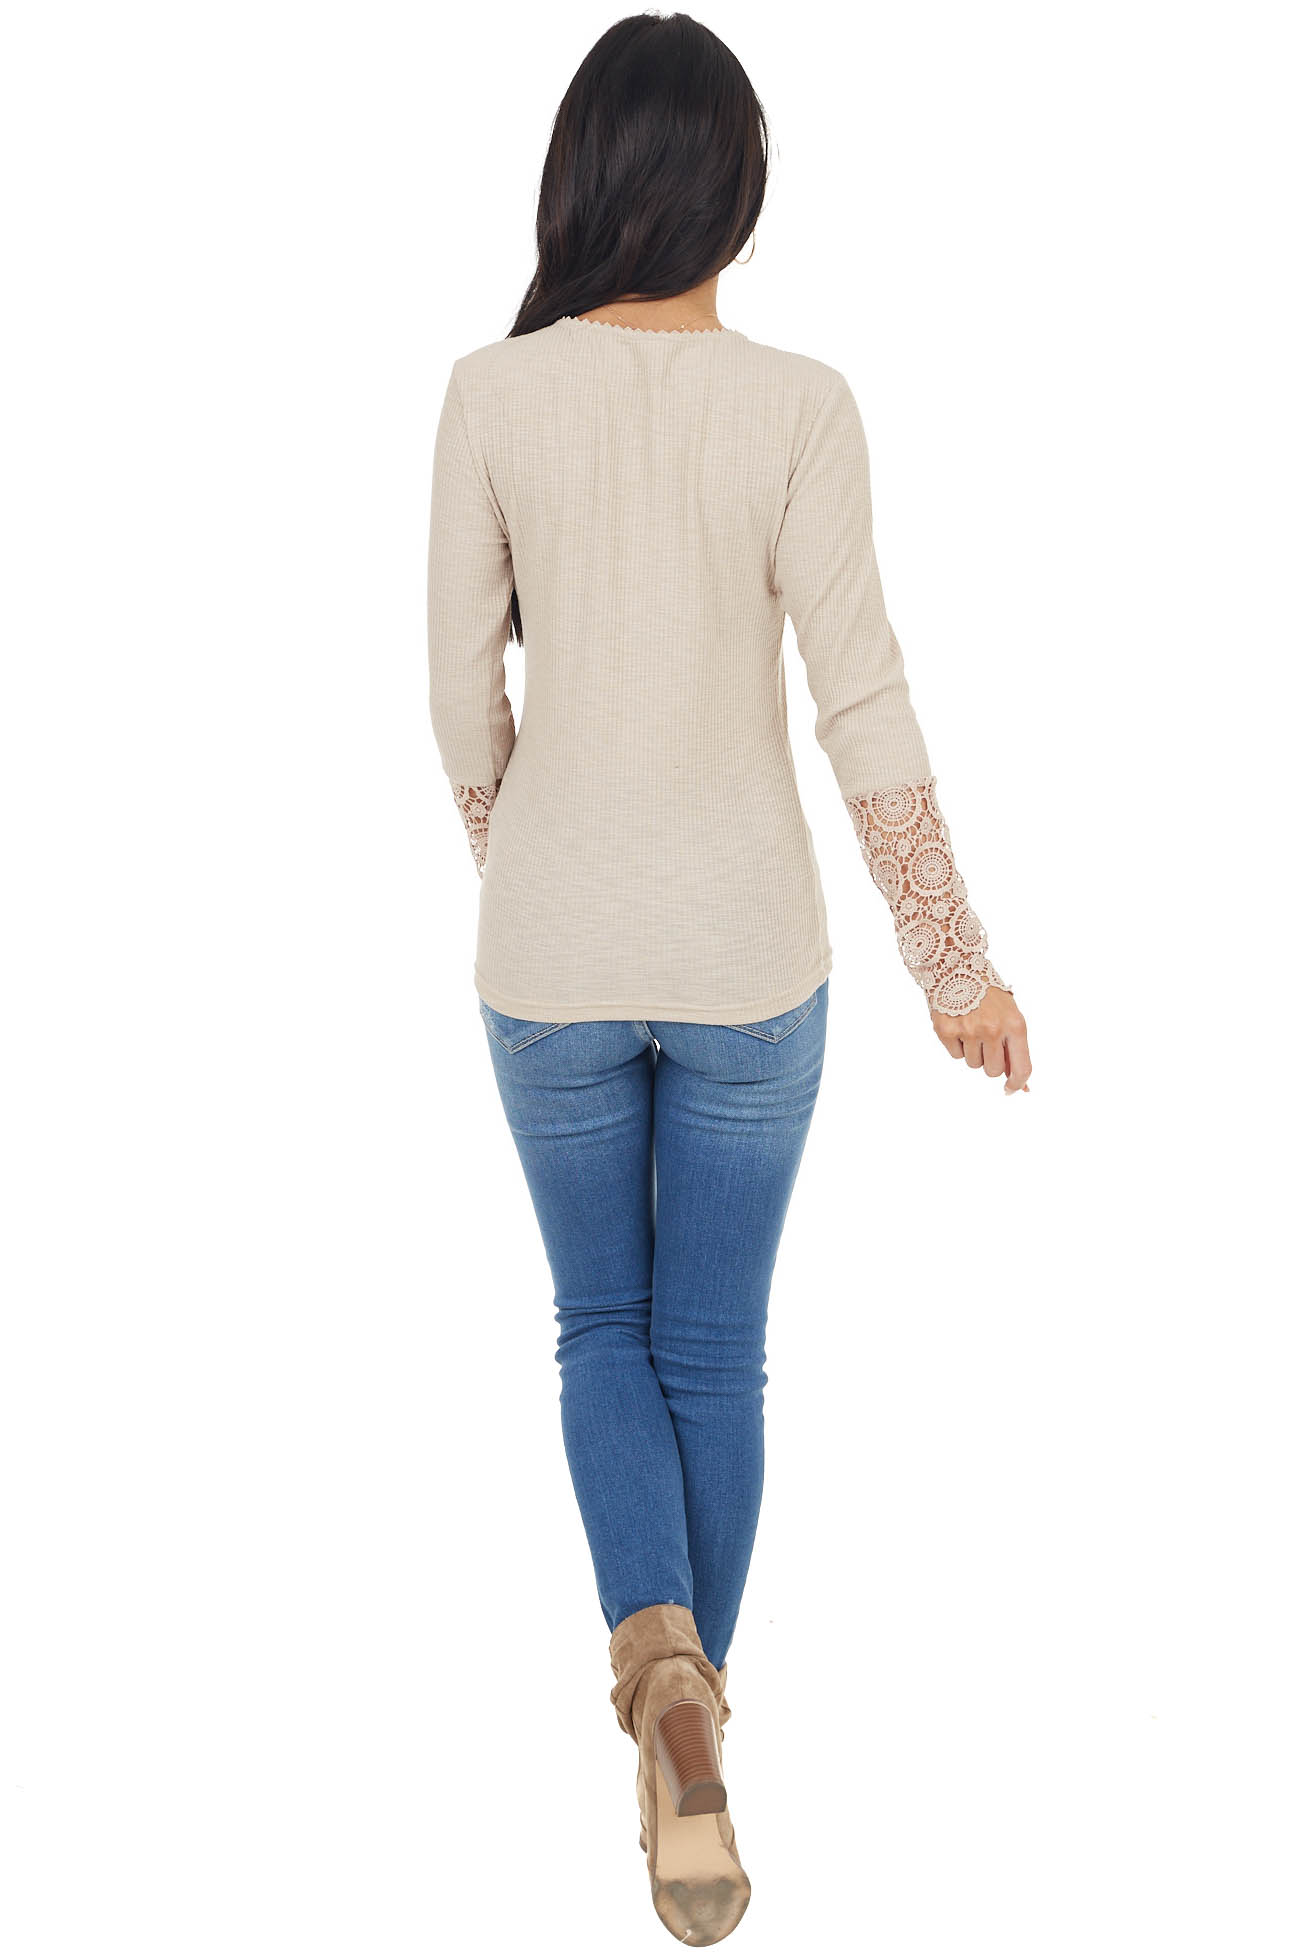 Latte Ribbed Knit Henley Top with Crochet Lace Cuffs